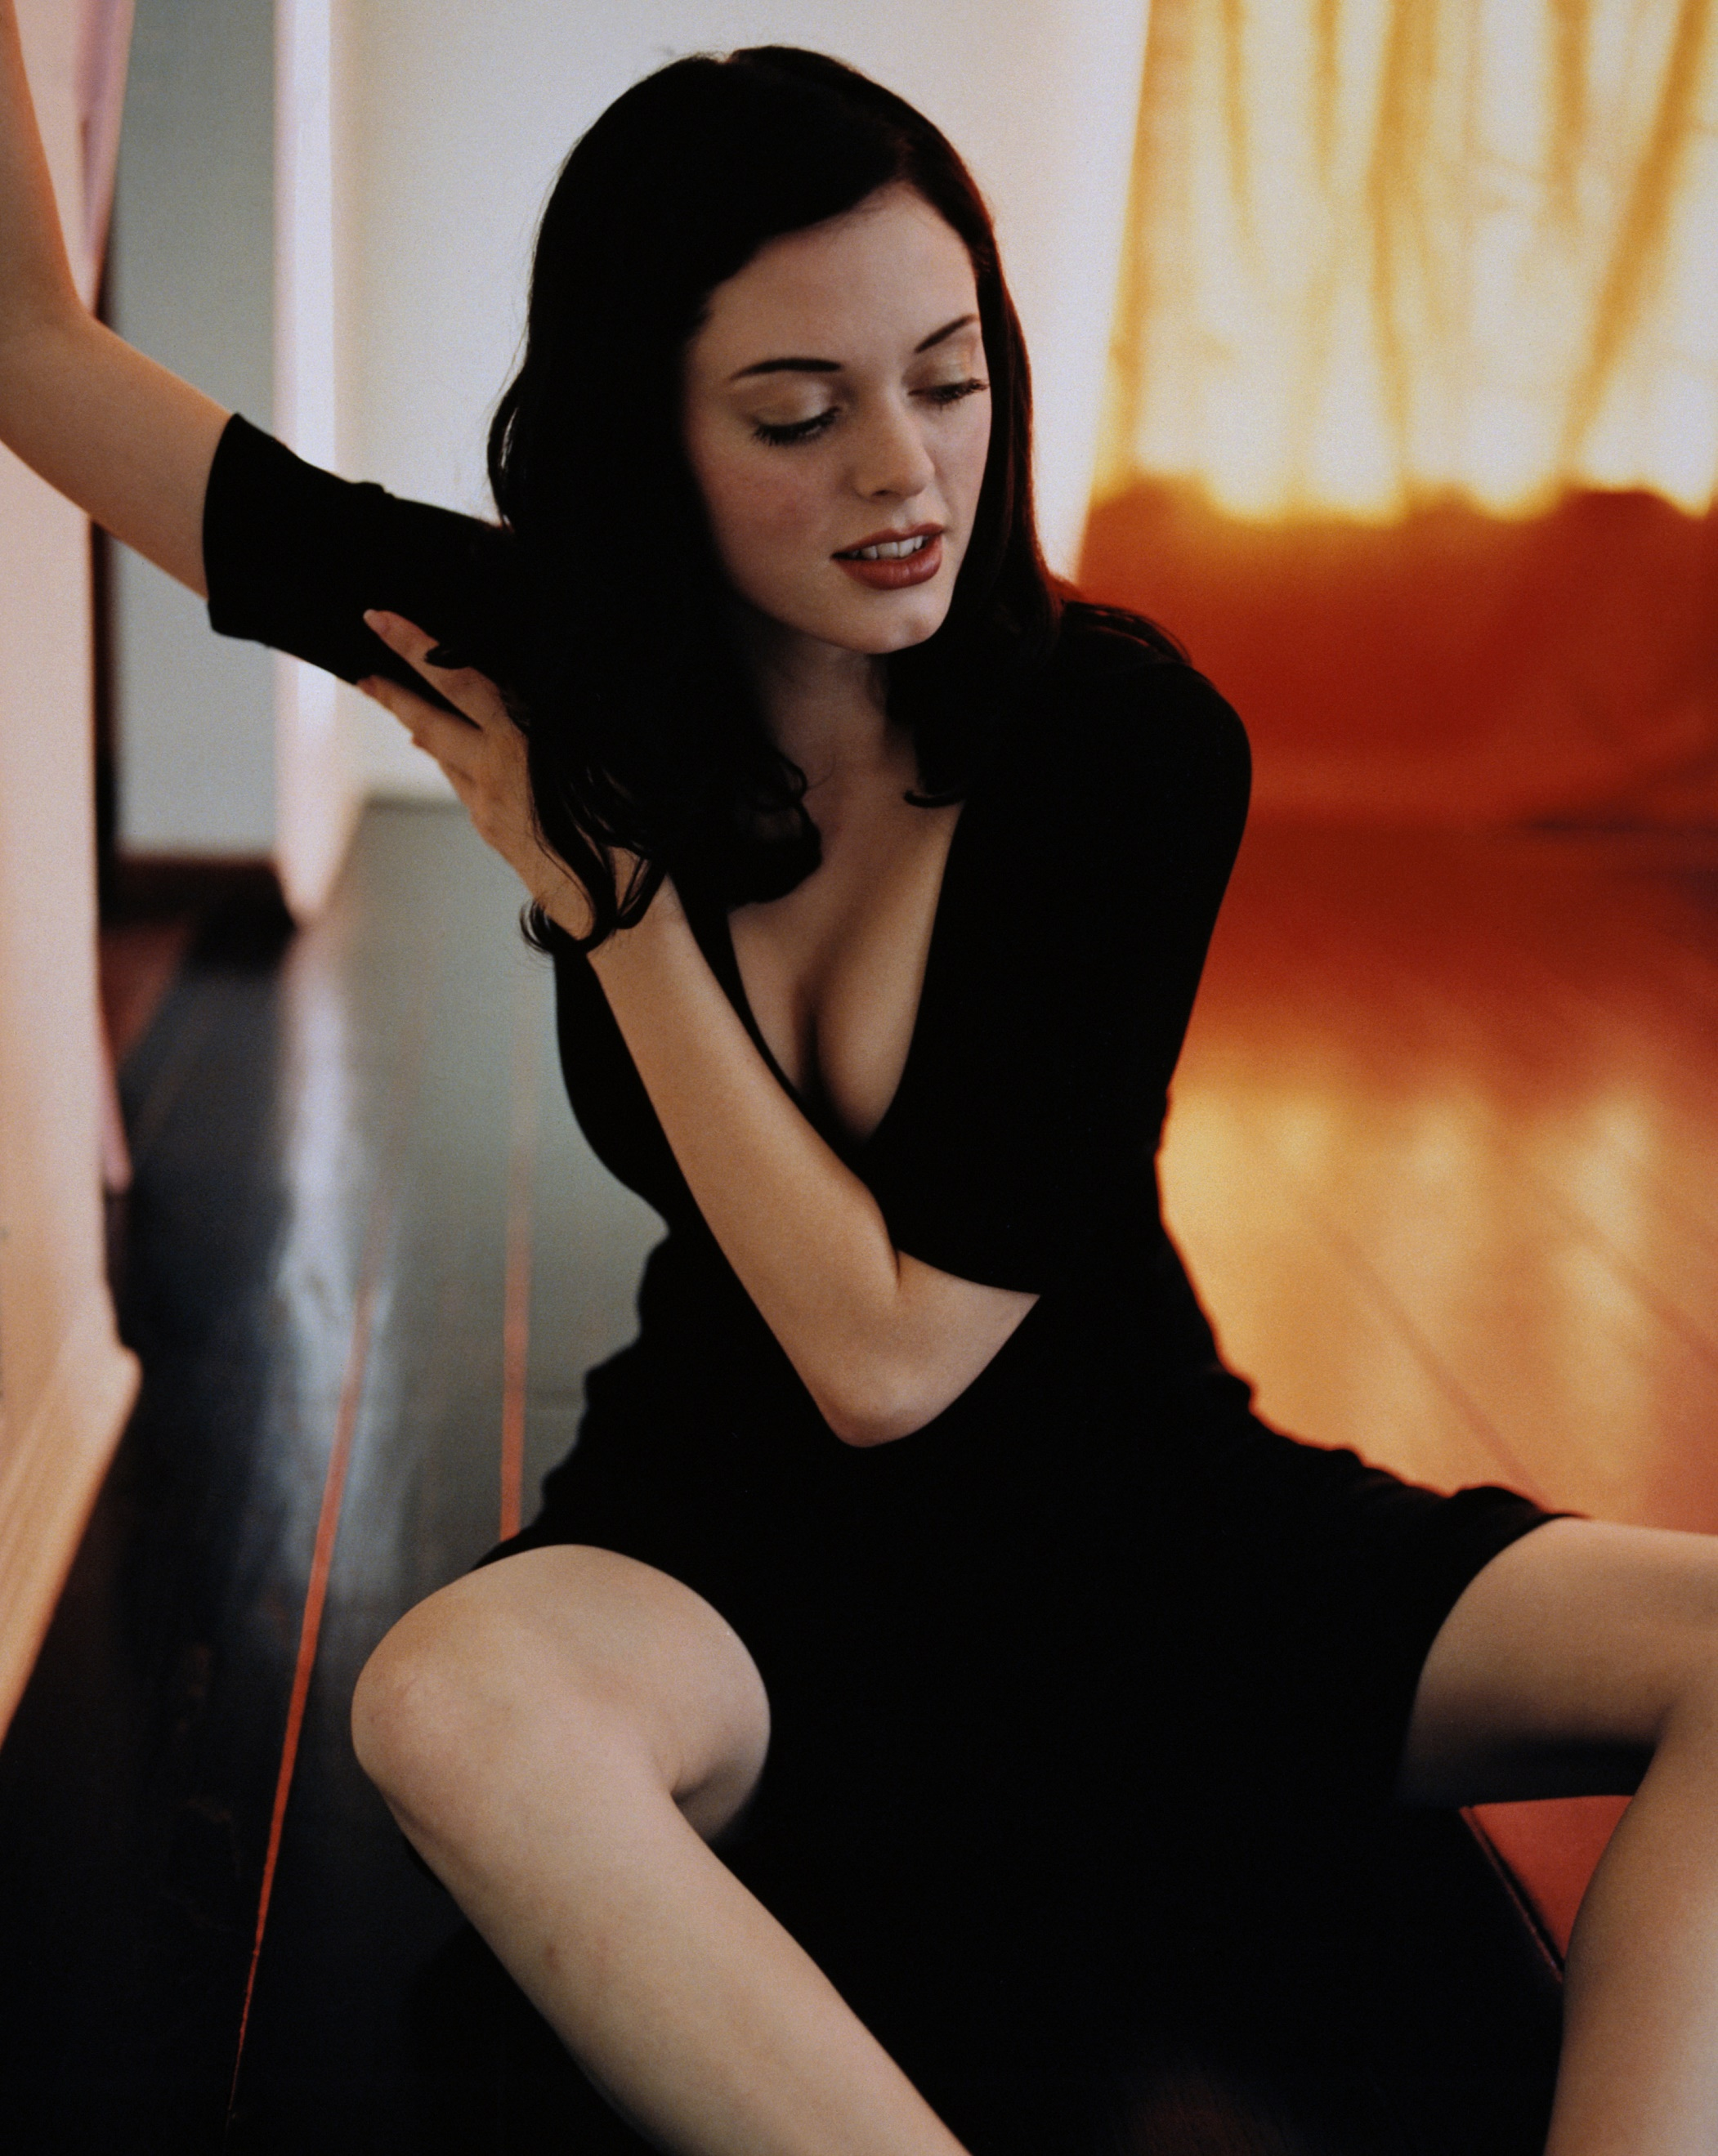 Rose mcgowan - nude picture 95